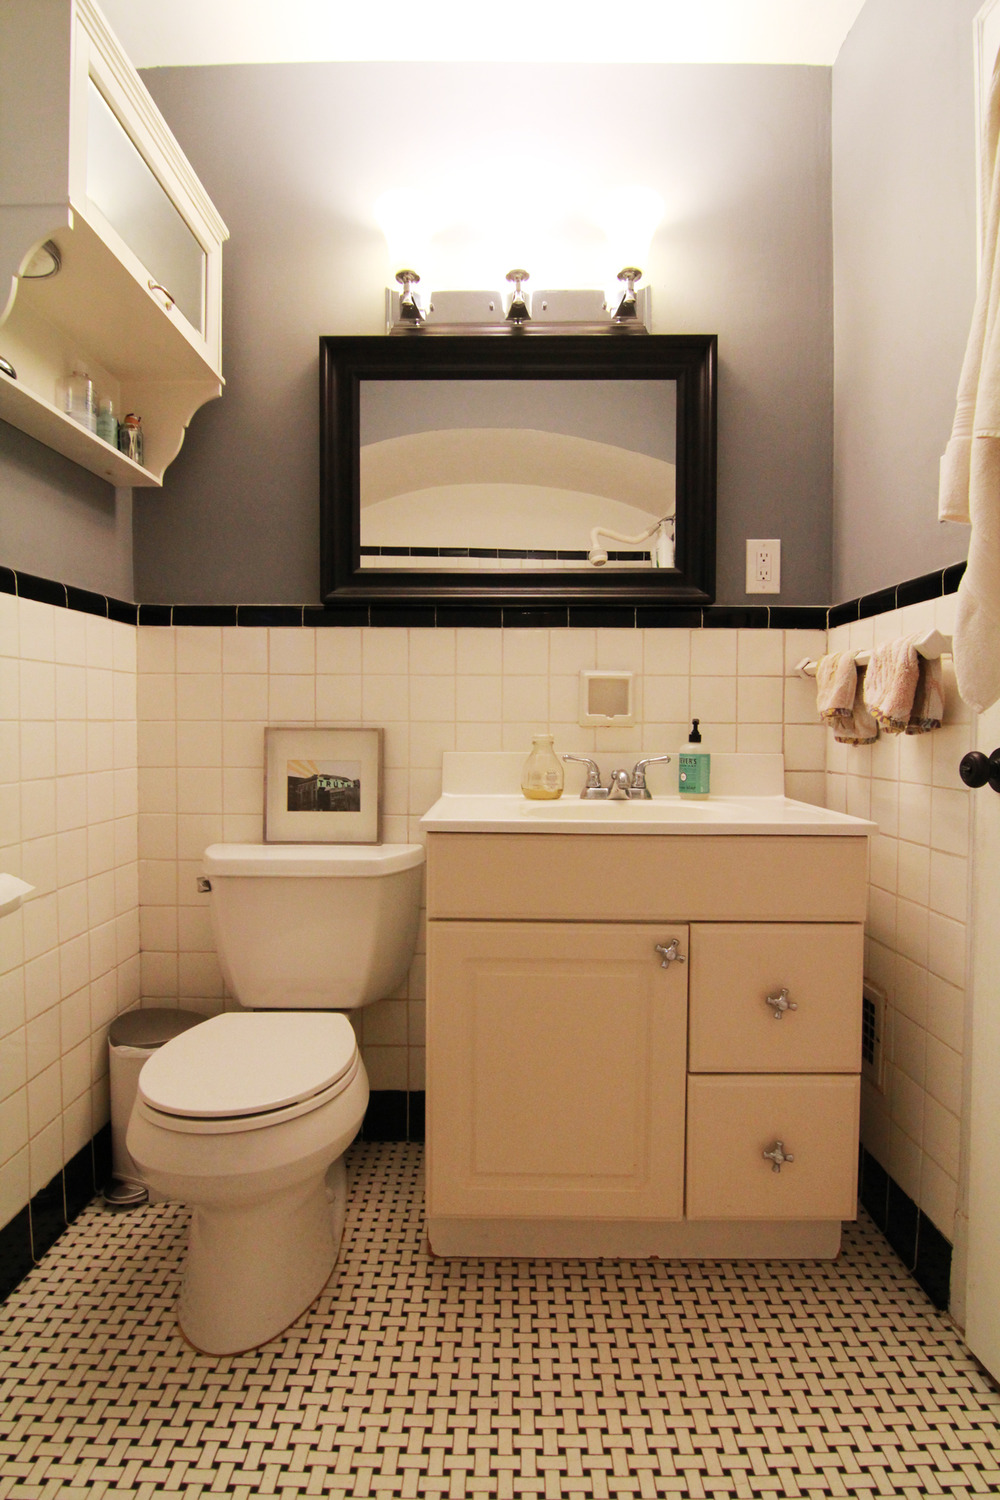 Before old dingy bathroom renovation